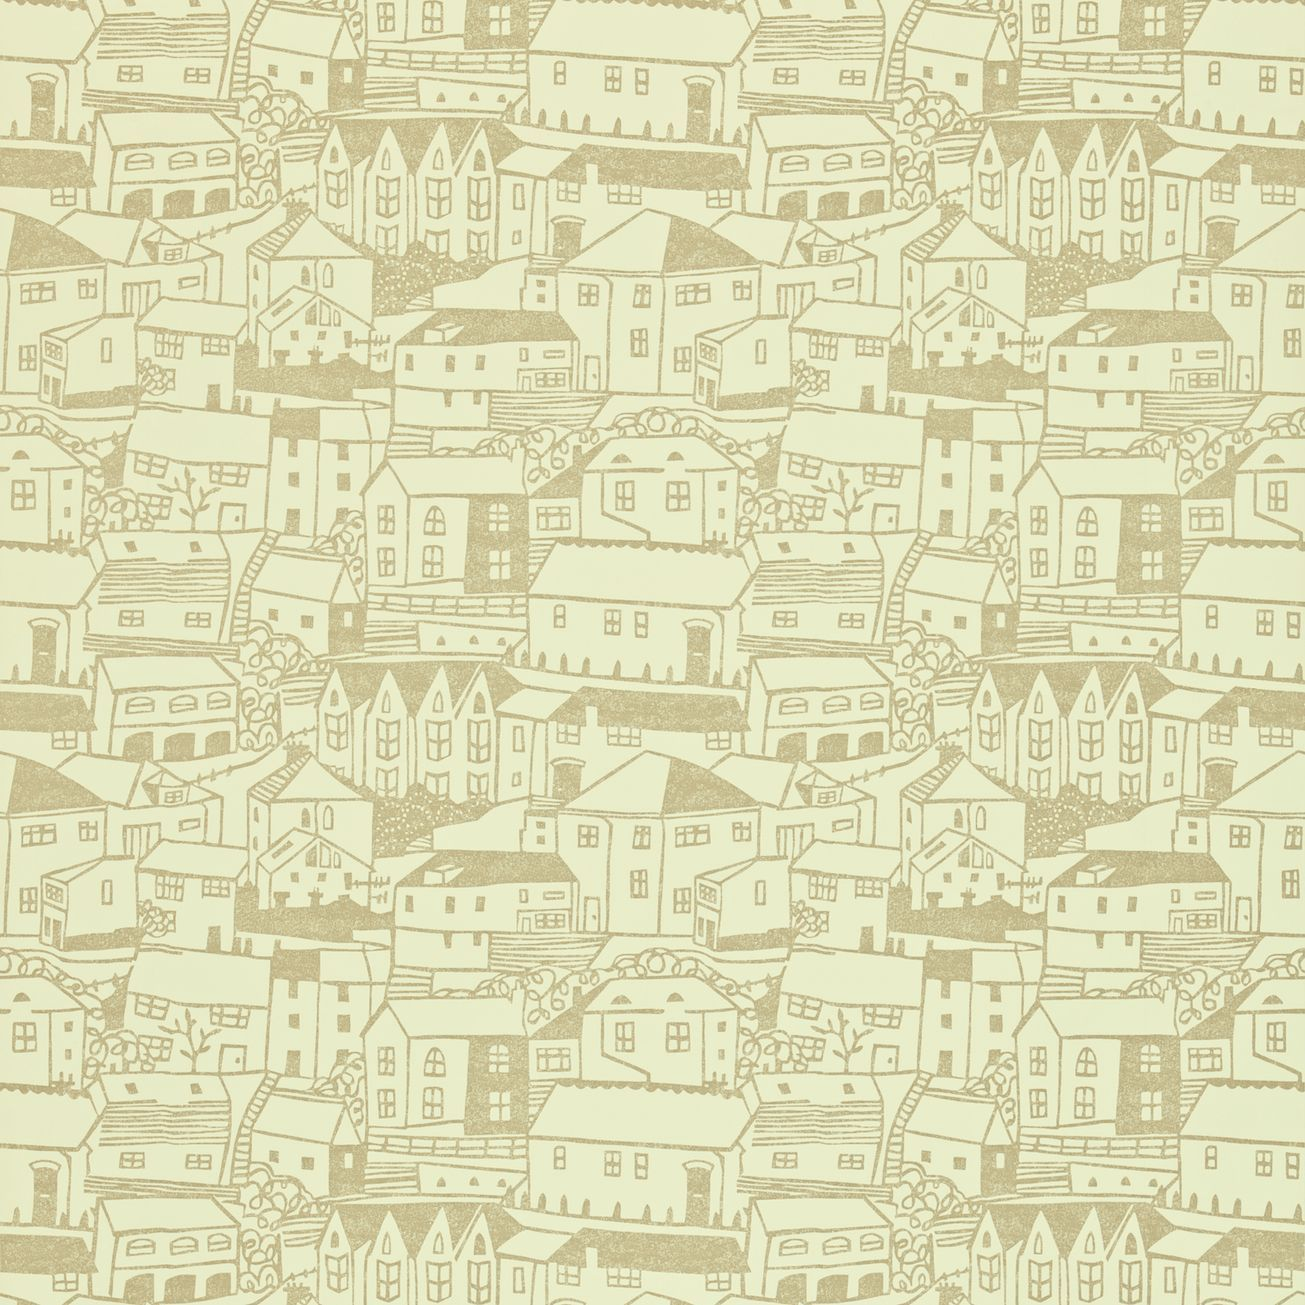 Wallpapers sanderson design details wallpapers prints patterns wallpapers sanderson design details paint wallpaperwallpaper onlinewallpaper designspattern sisterspd